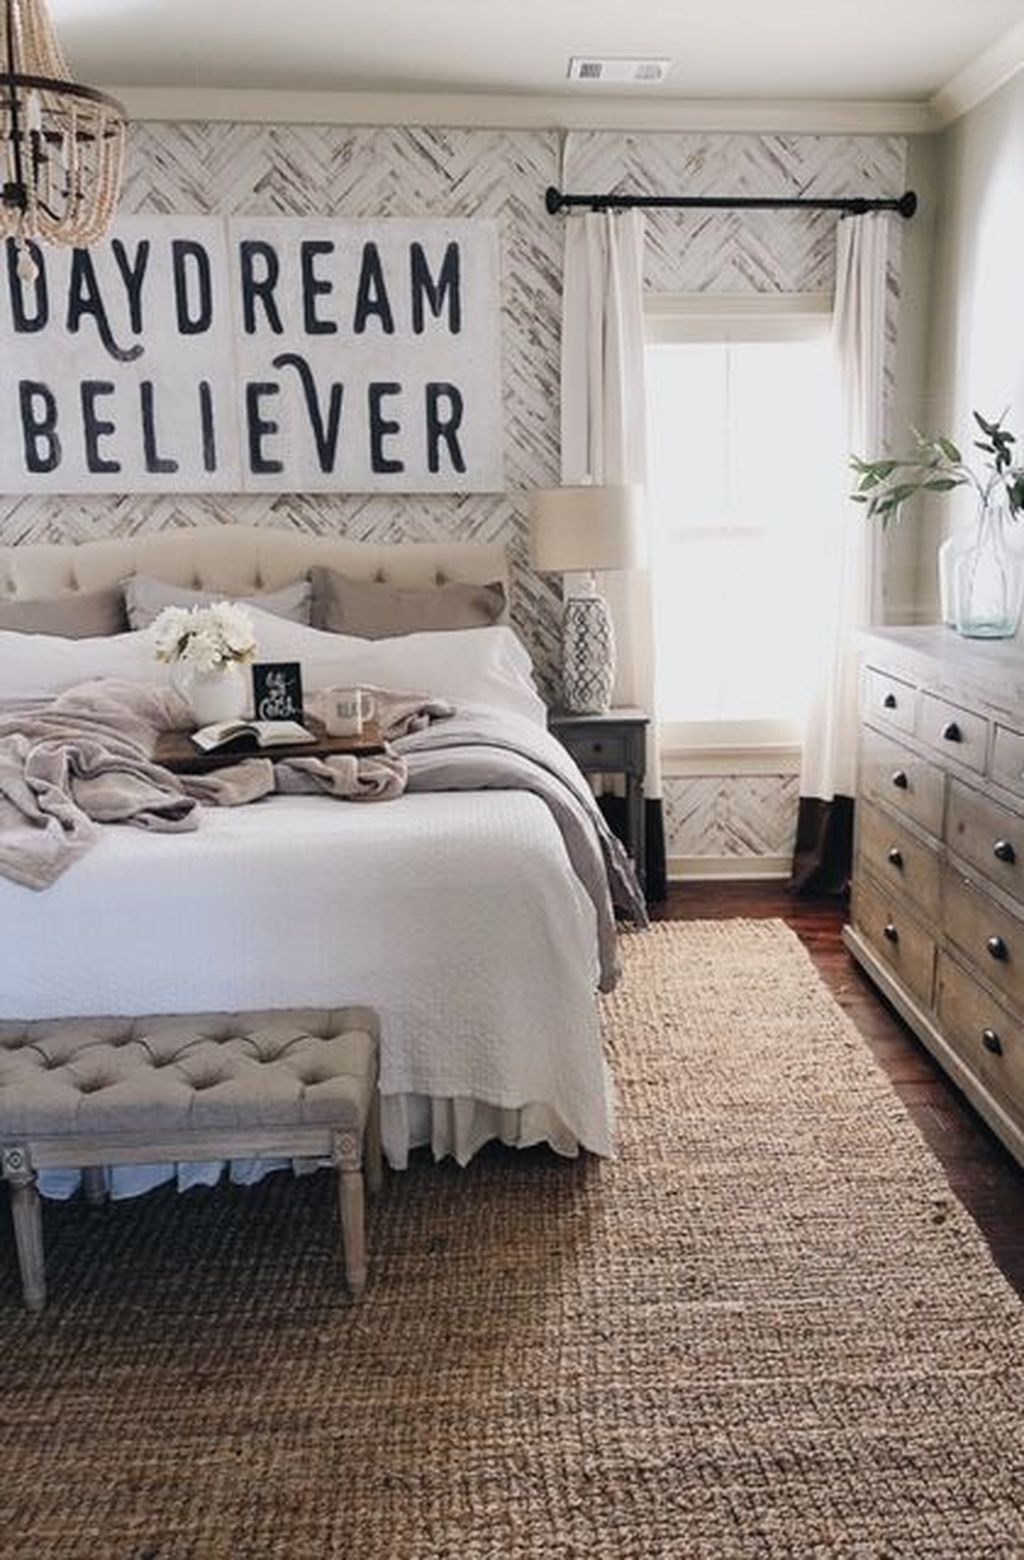 Admiring Bedroom Decor Ideas To Have Right Now 21